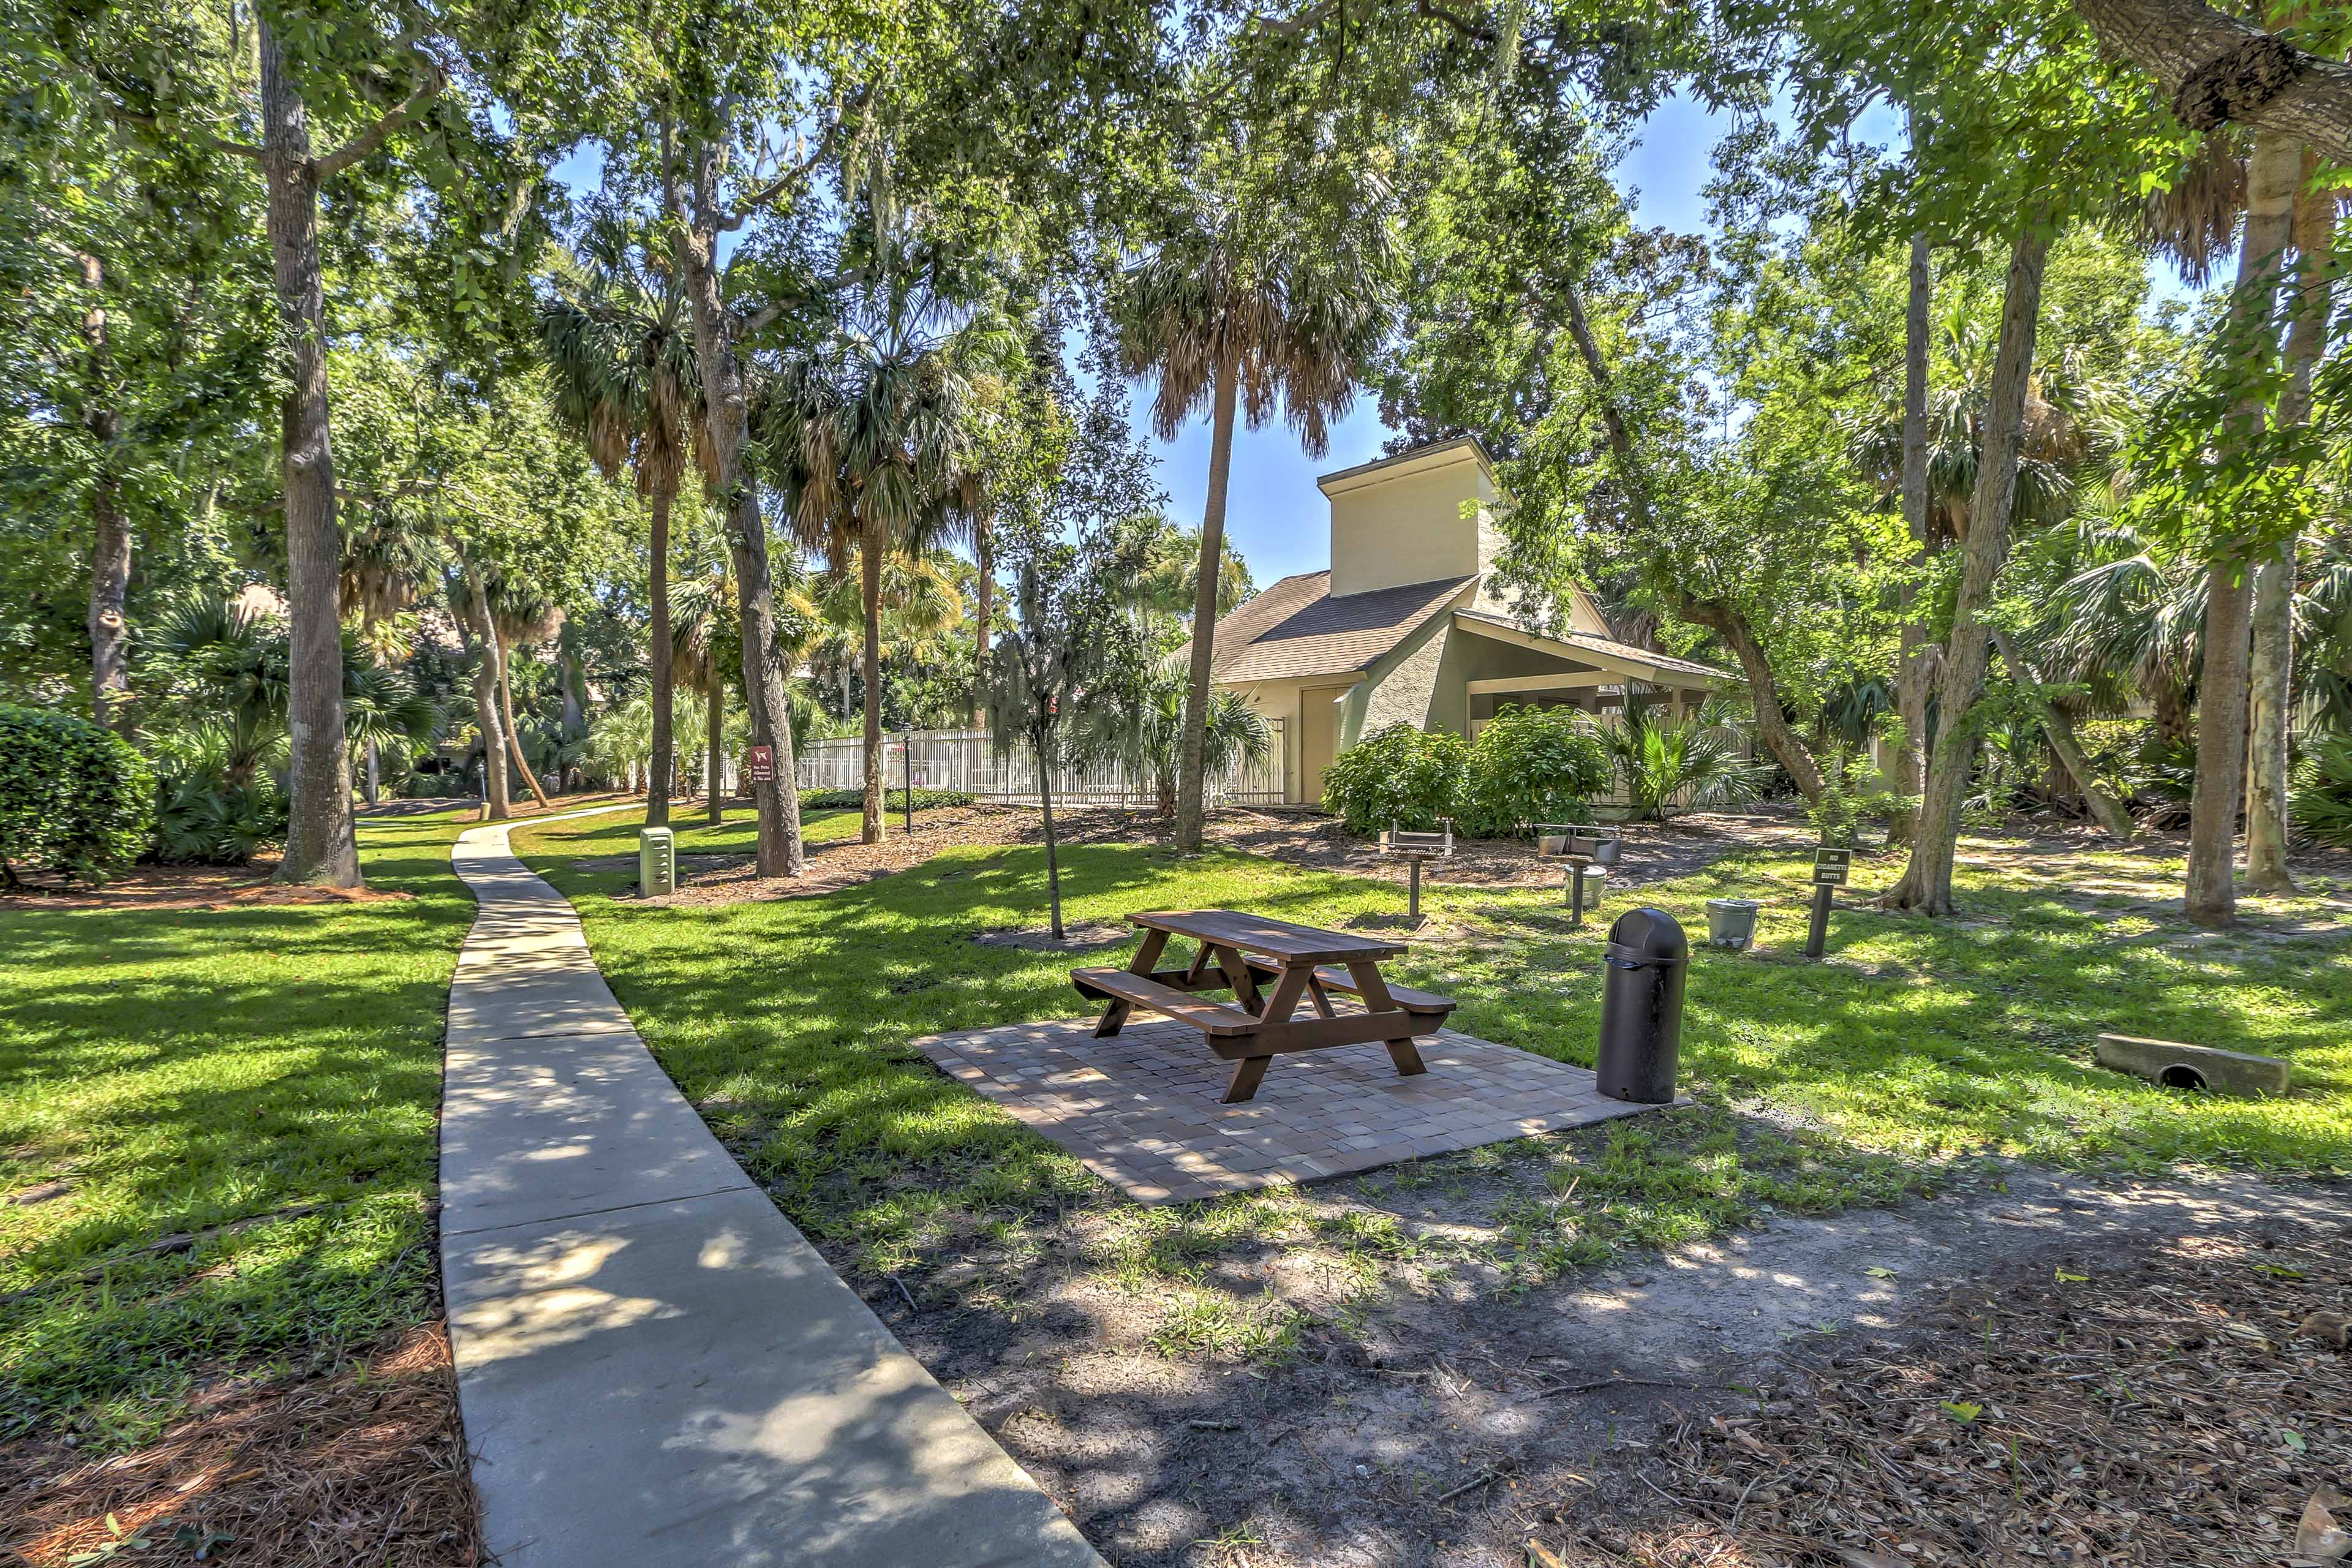 Enjoy a picnic under the canopy of trees right outside the back door.